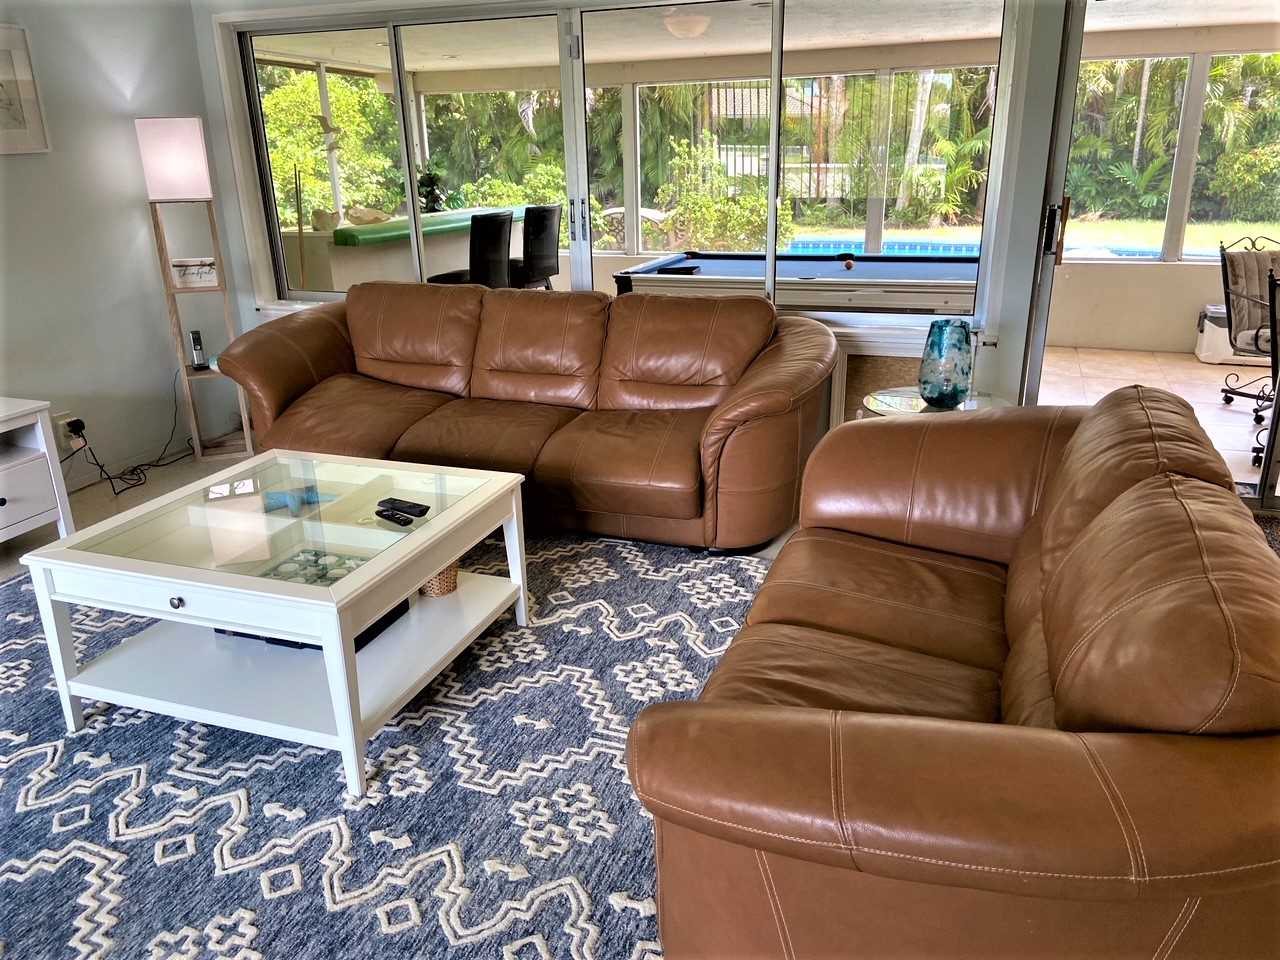 Living area has leather furniture and queen size pull out so